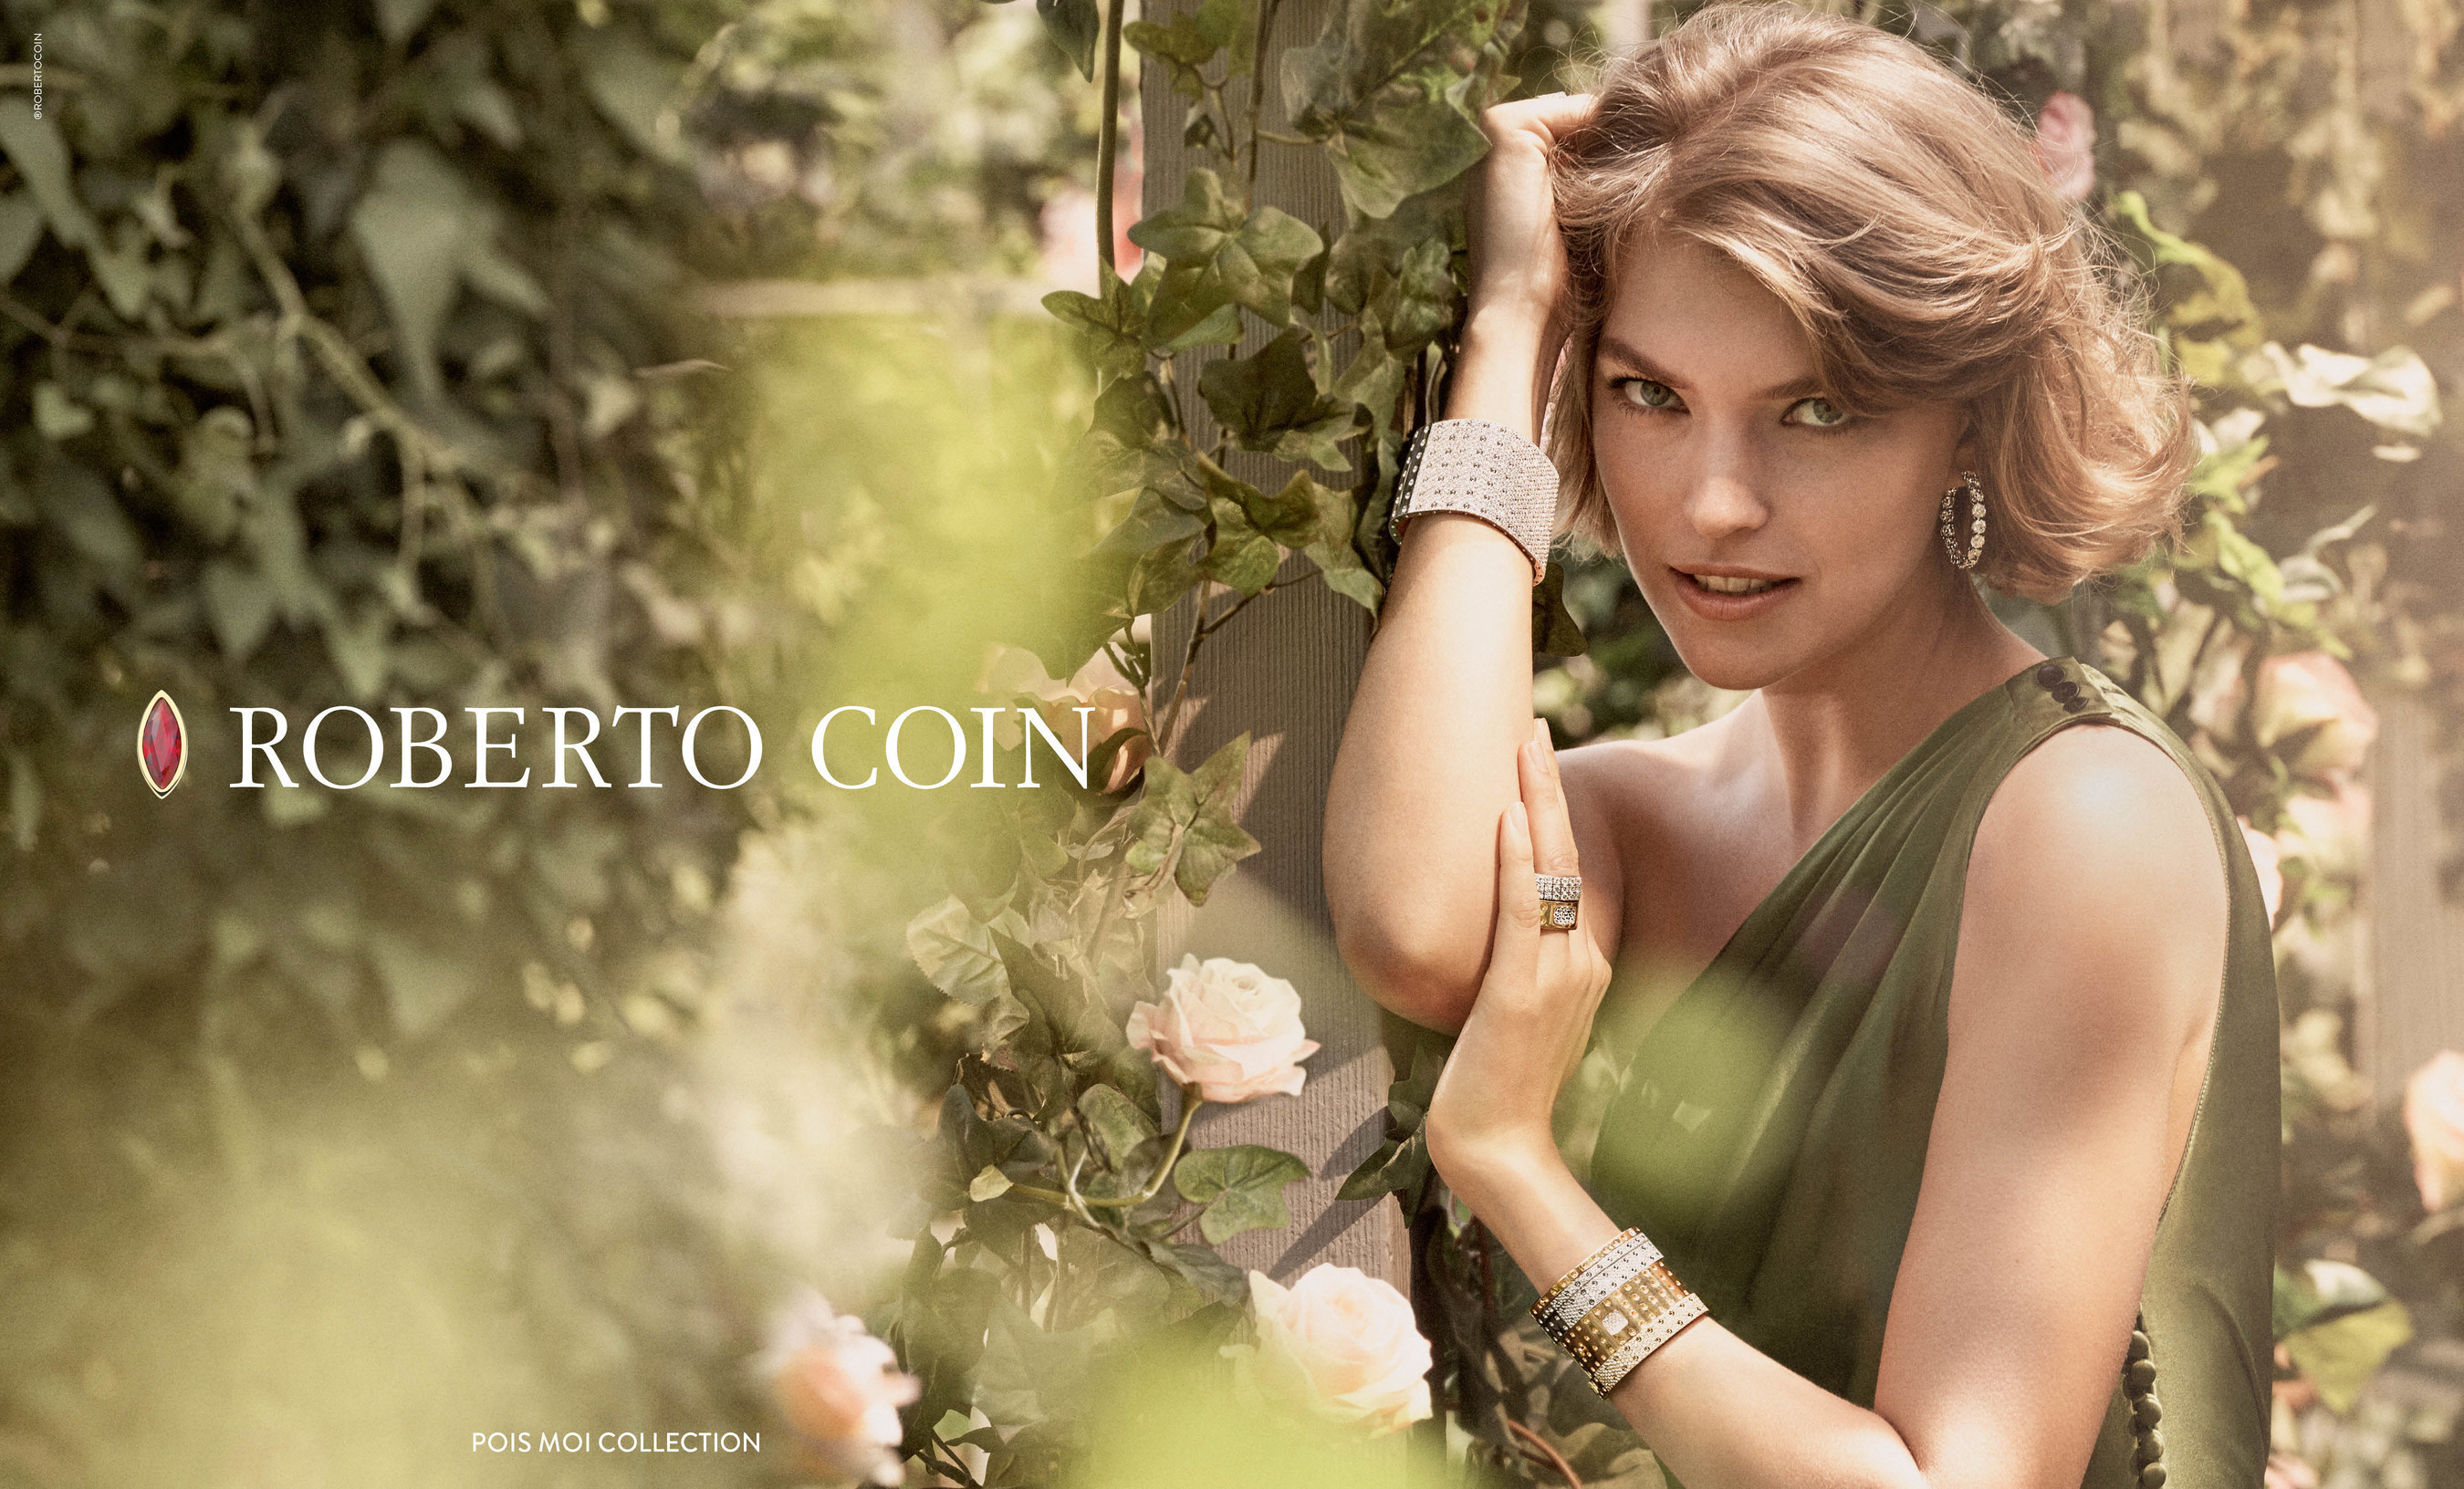 A New Face on the Coin: 'Arizona Muse Selected as the Model for the 2015 Campaign